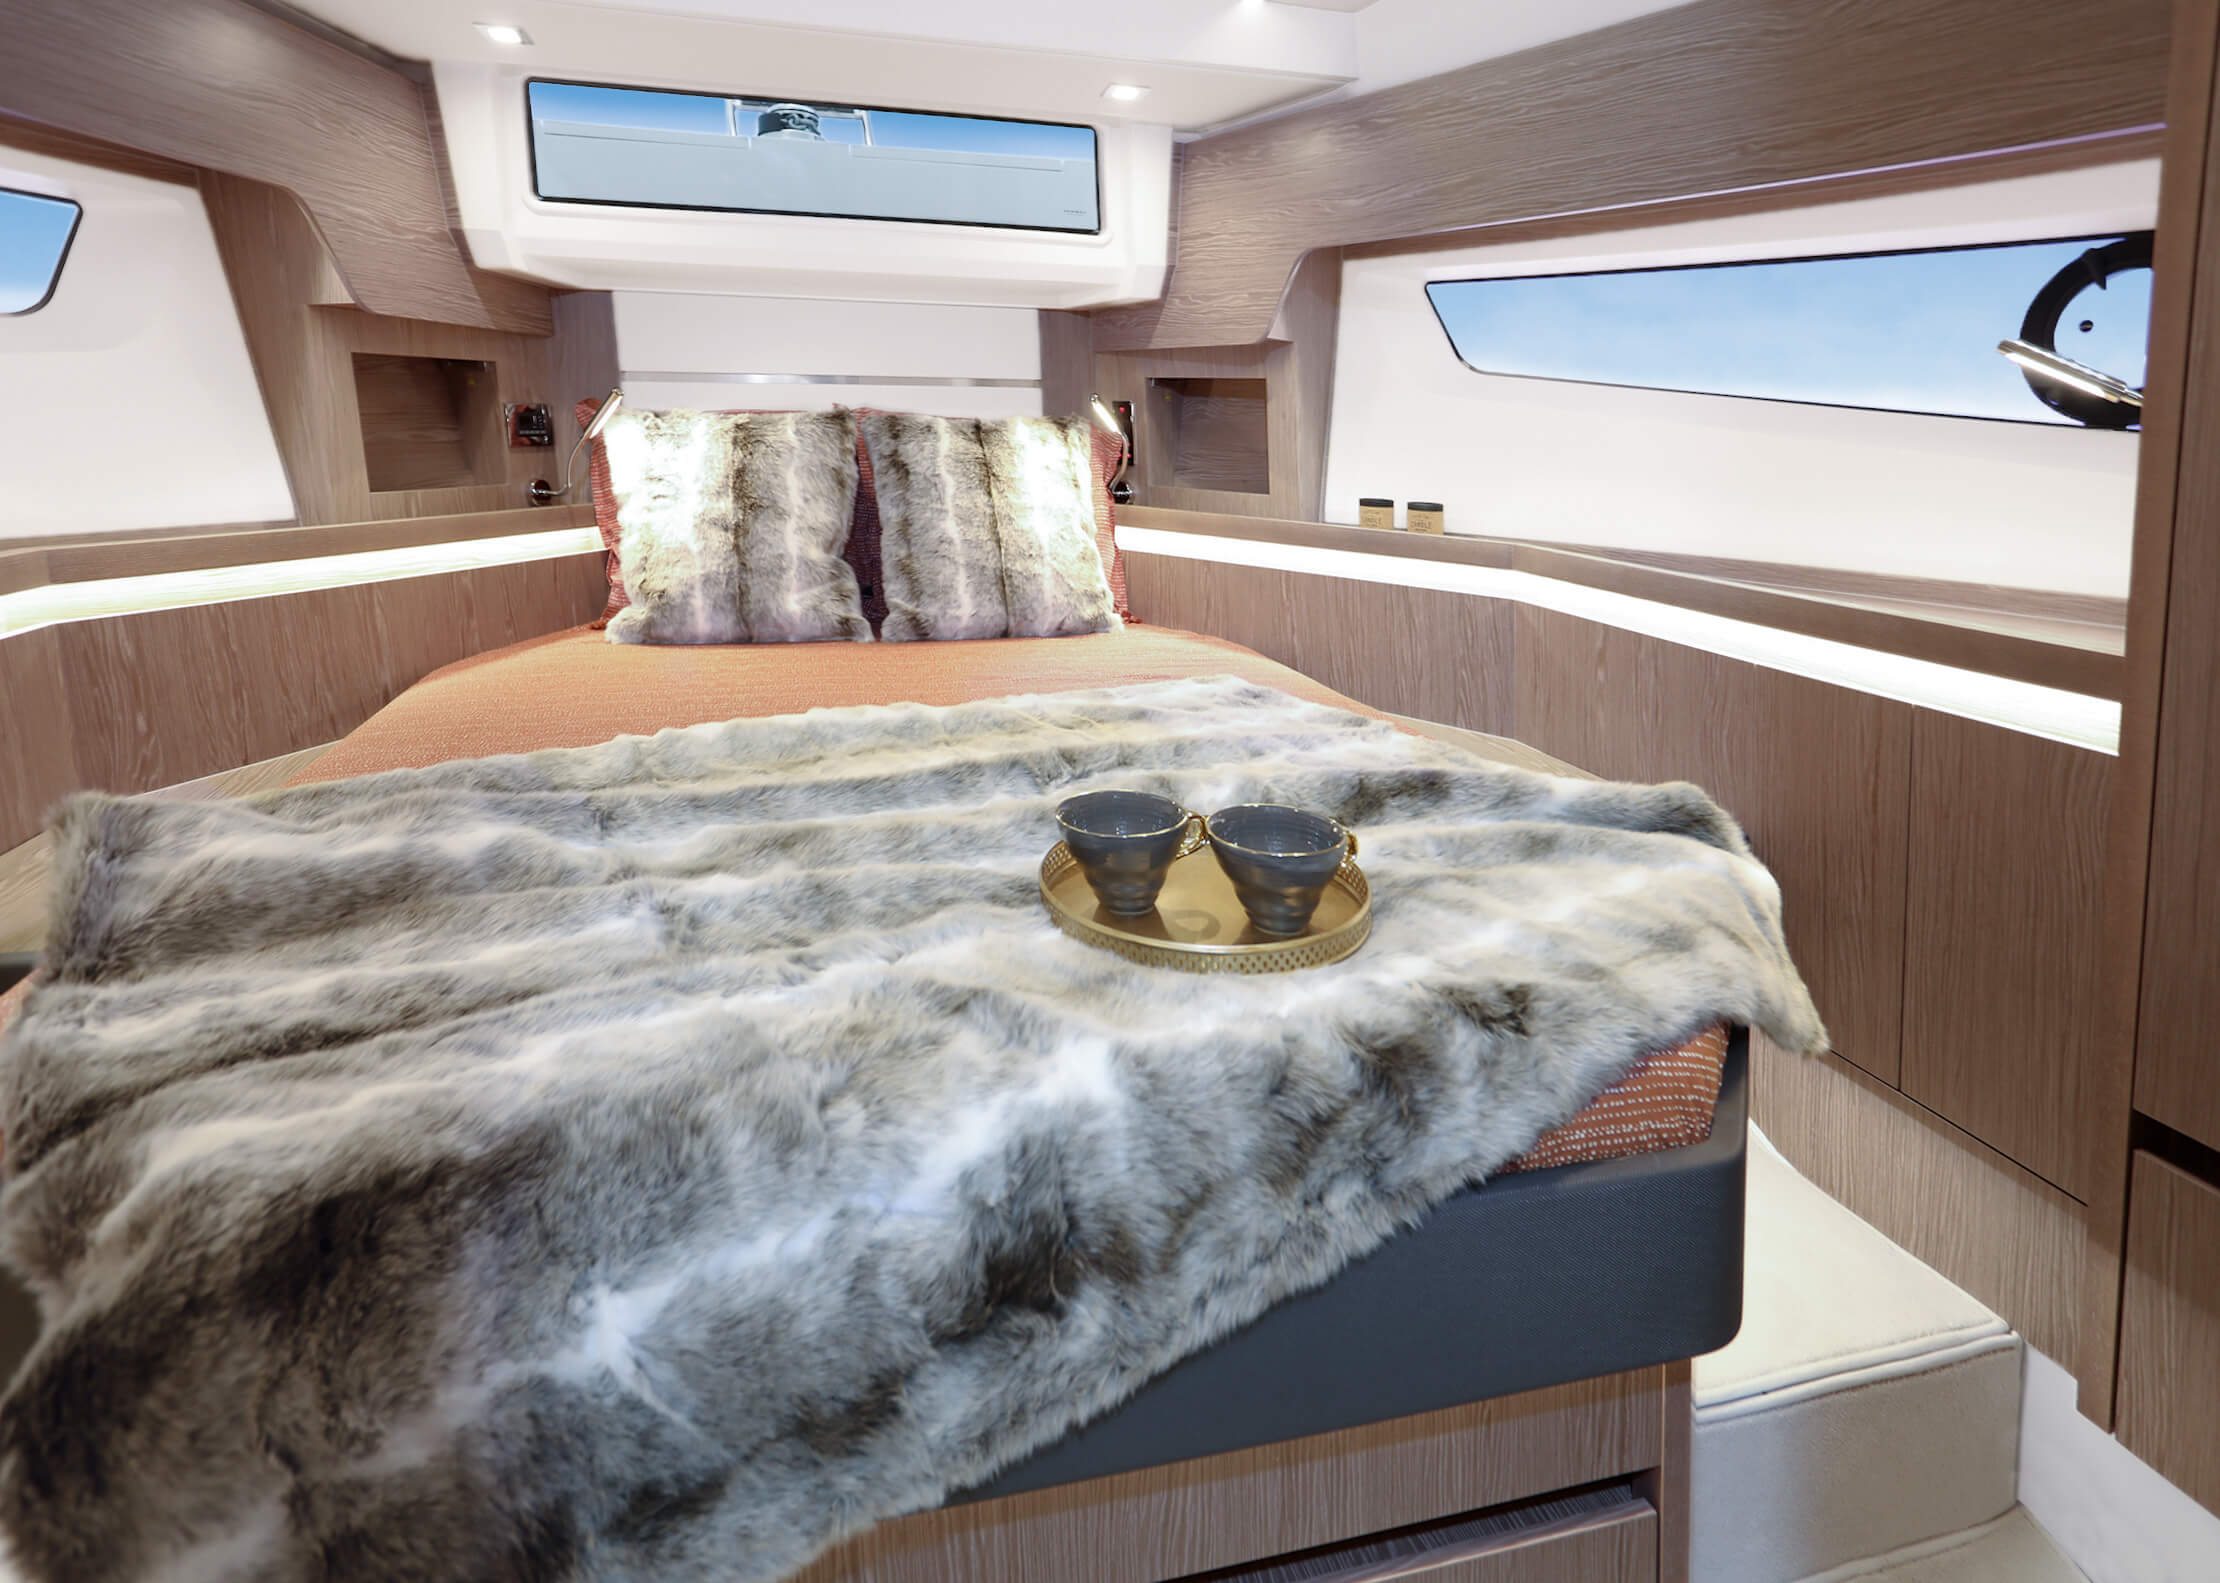 Sealine F430 Interno vista | VIP cabin with double berth, 2 wardrobes and sideboards with stowage and two bedside tables. 1 drawer underneath the bed. | Sealine